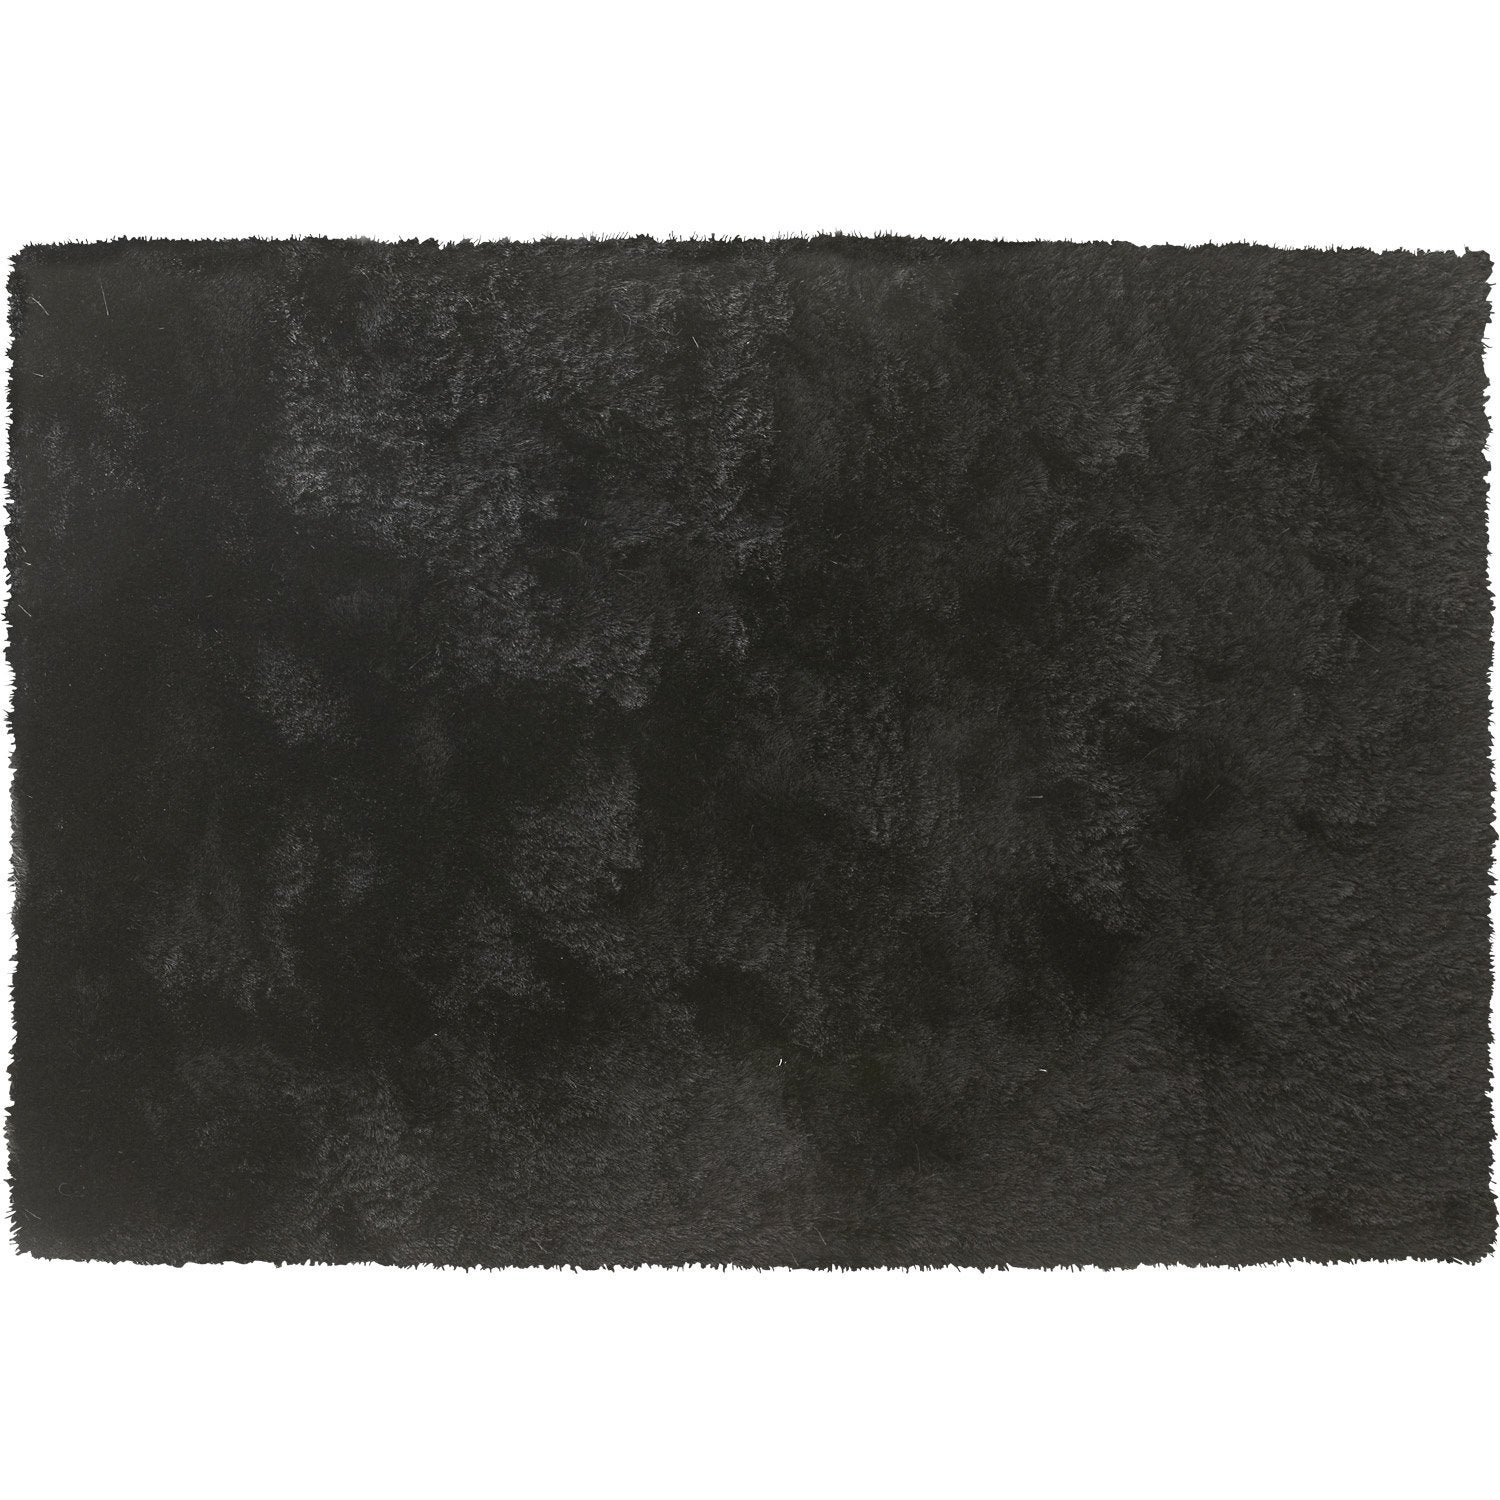 tapis shaggy zelia noir 170x120 cm leroy merlin. Black Bedroom Furniture Sets. Home Design Ideas